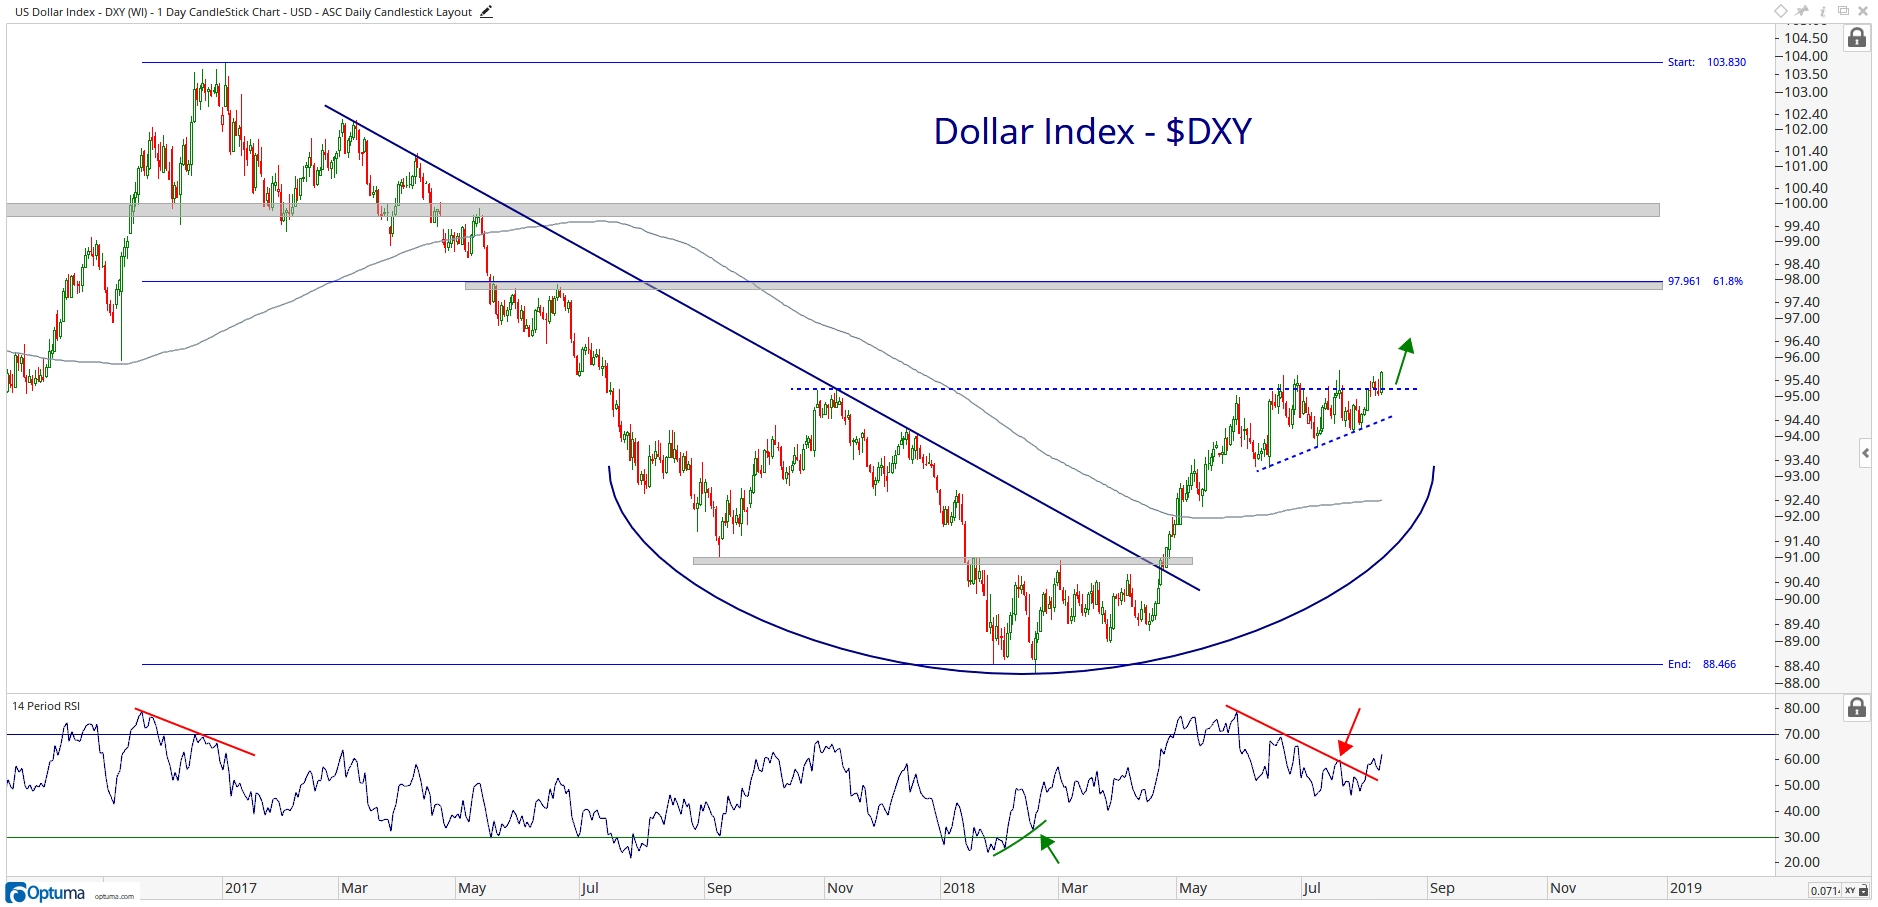 Chart of The Week] Dollar Index Makes 1-Year Closing Highs - All